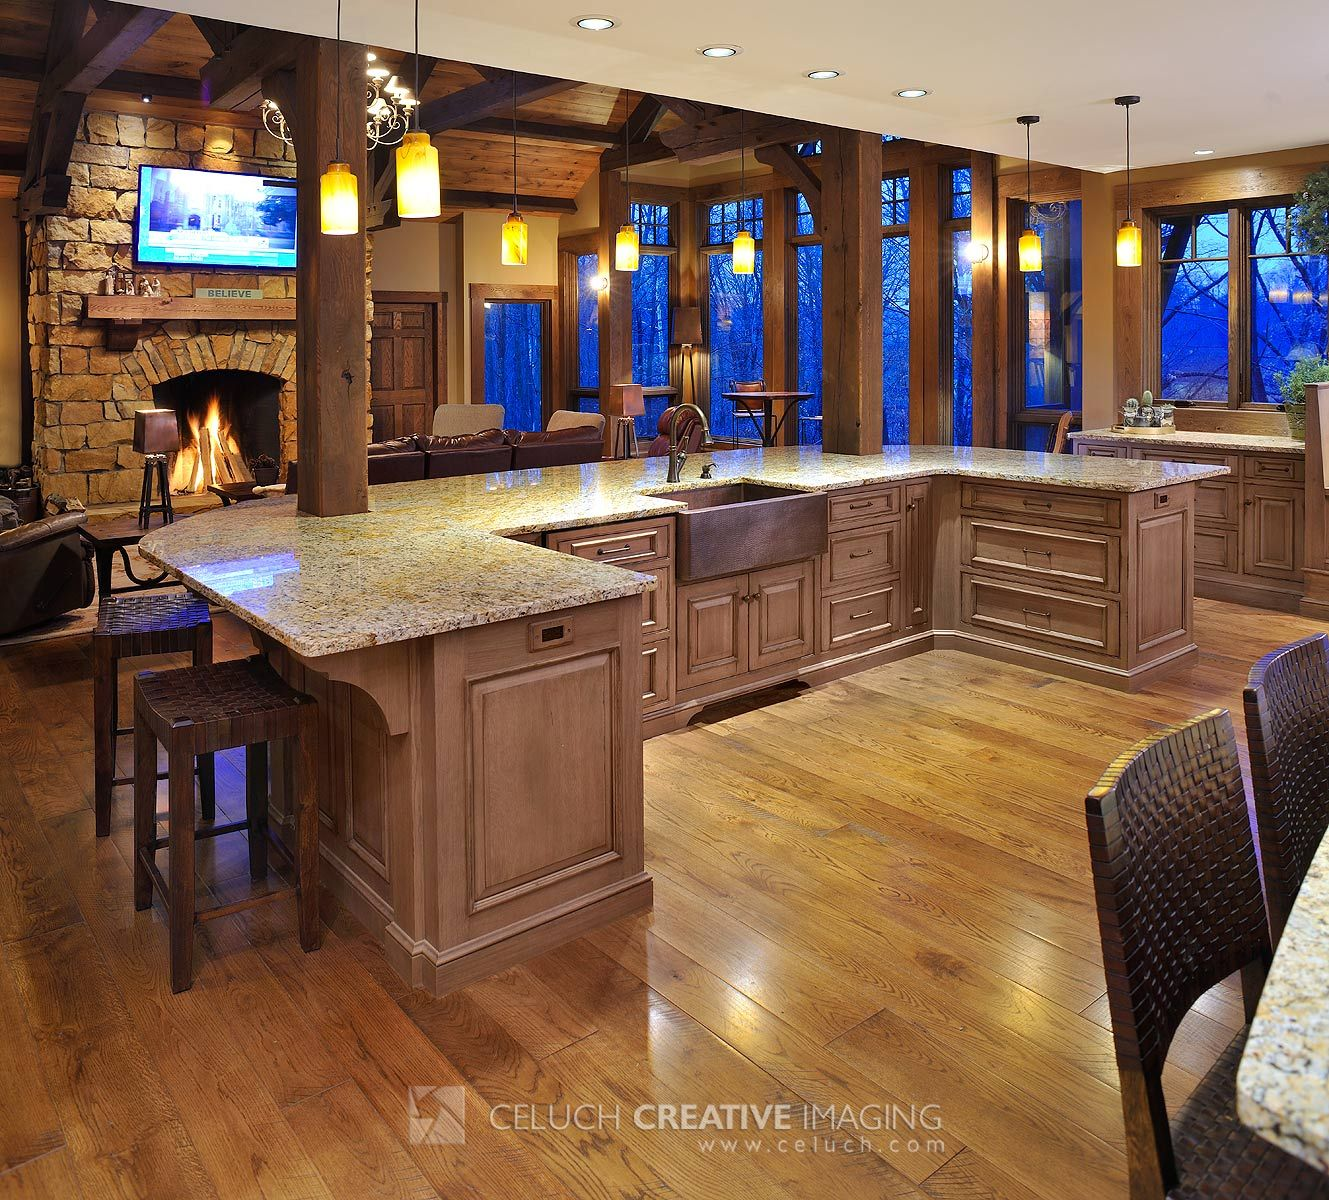 We Love This Double Island Kitchen Huge Open Kitchen: Mullet Cabinet - Large Rustic Timber Frame Kitchen With Two Islands And Wood…